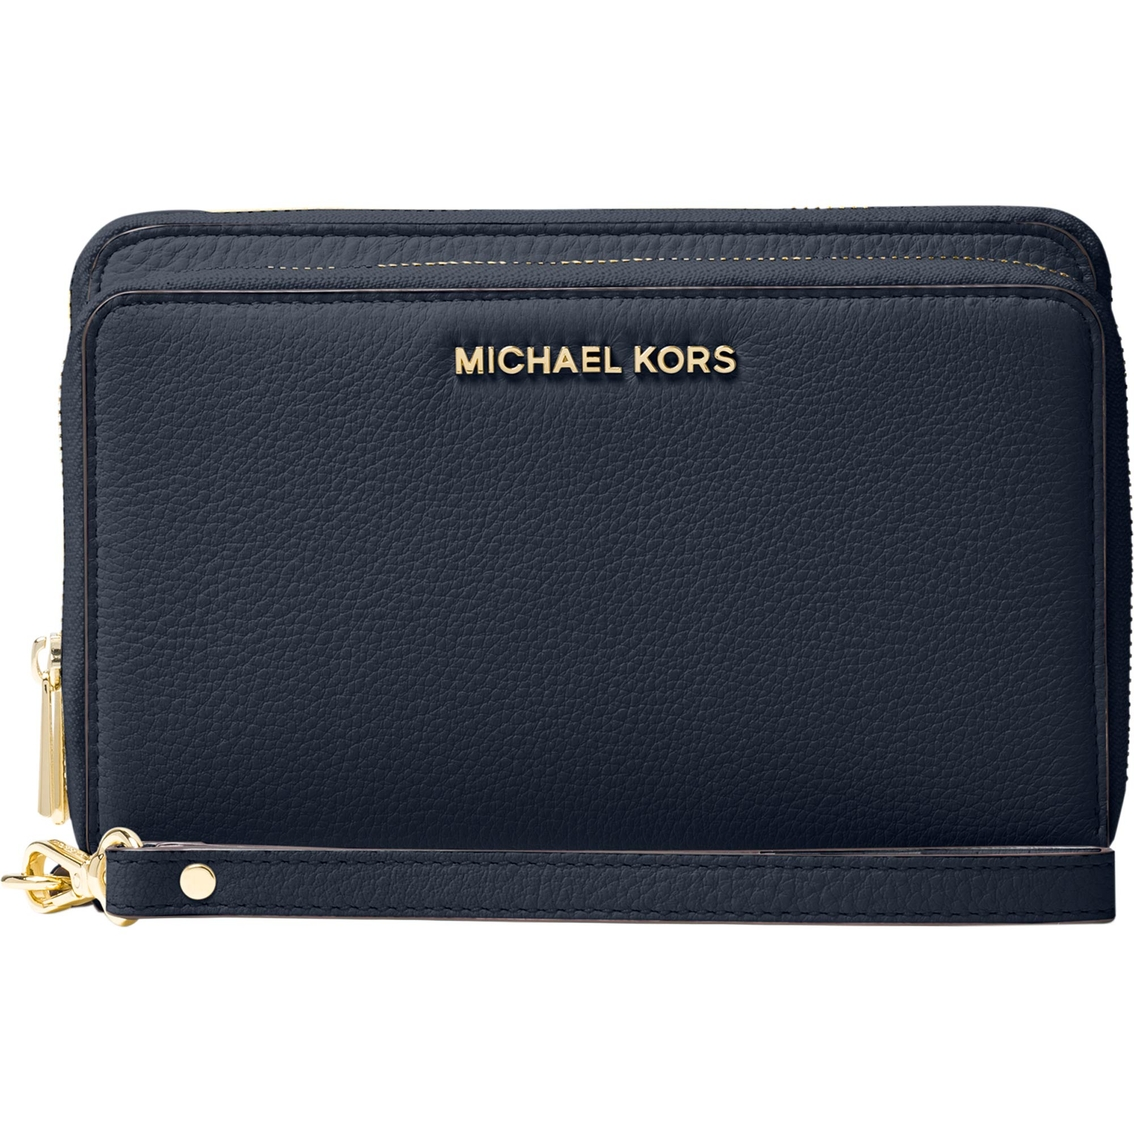 super popular c18b1 02ccc Michael Kors Adele Large Flat Multi Function Phone Case | Cell Phone ...